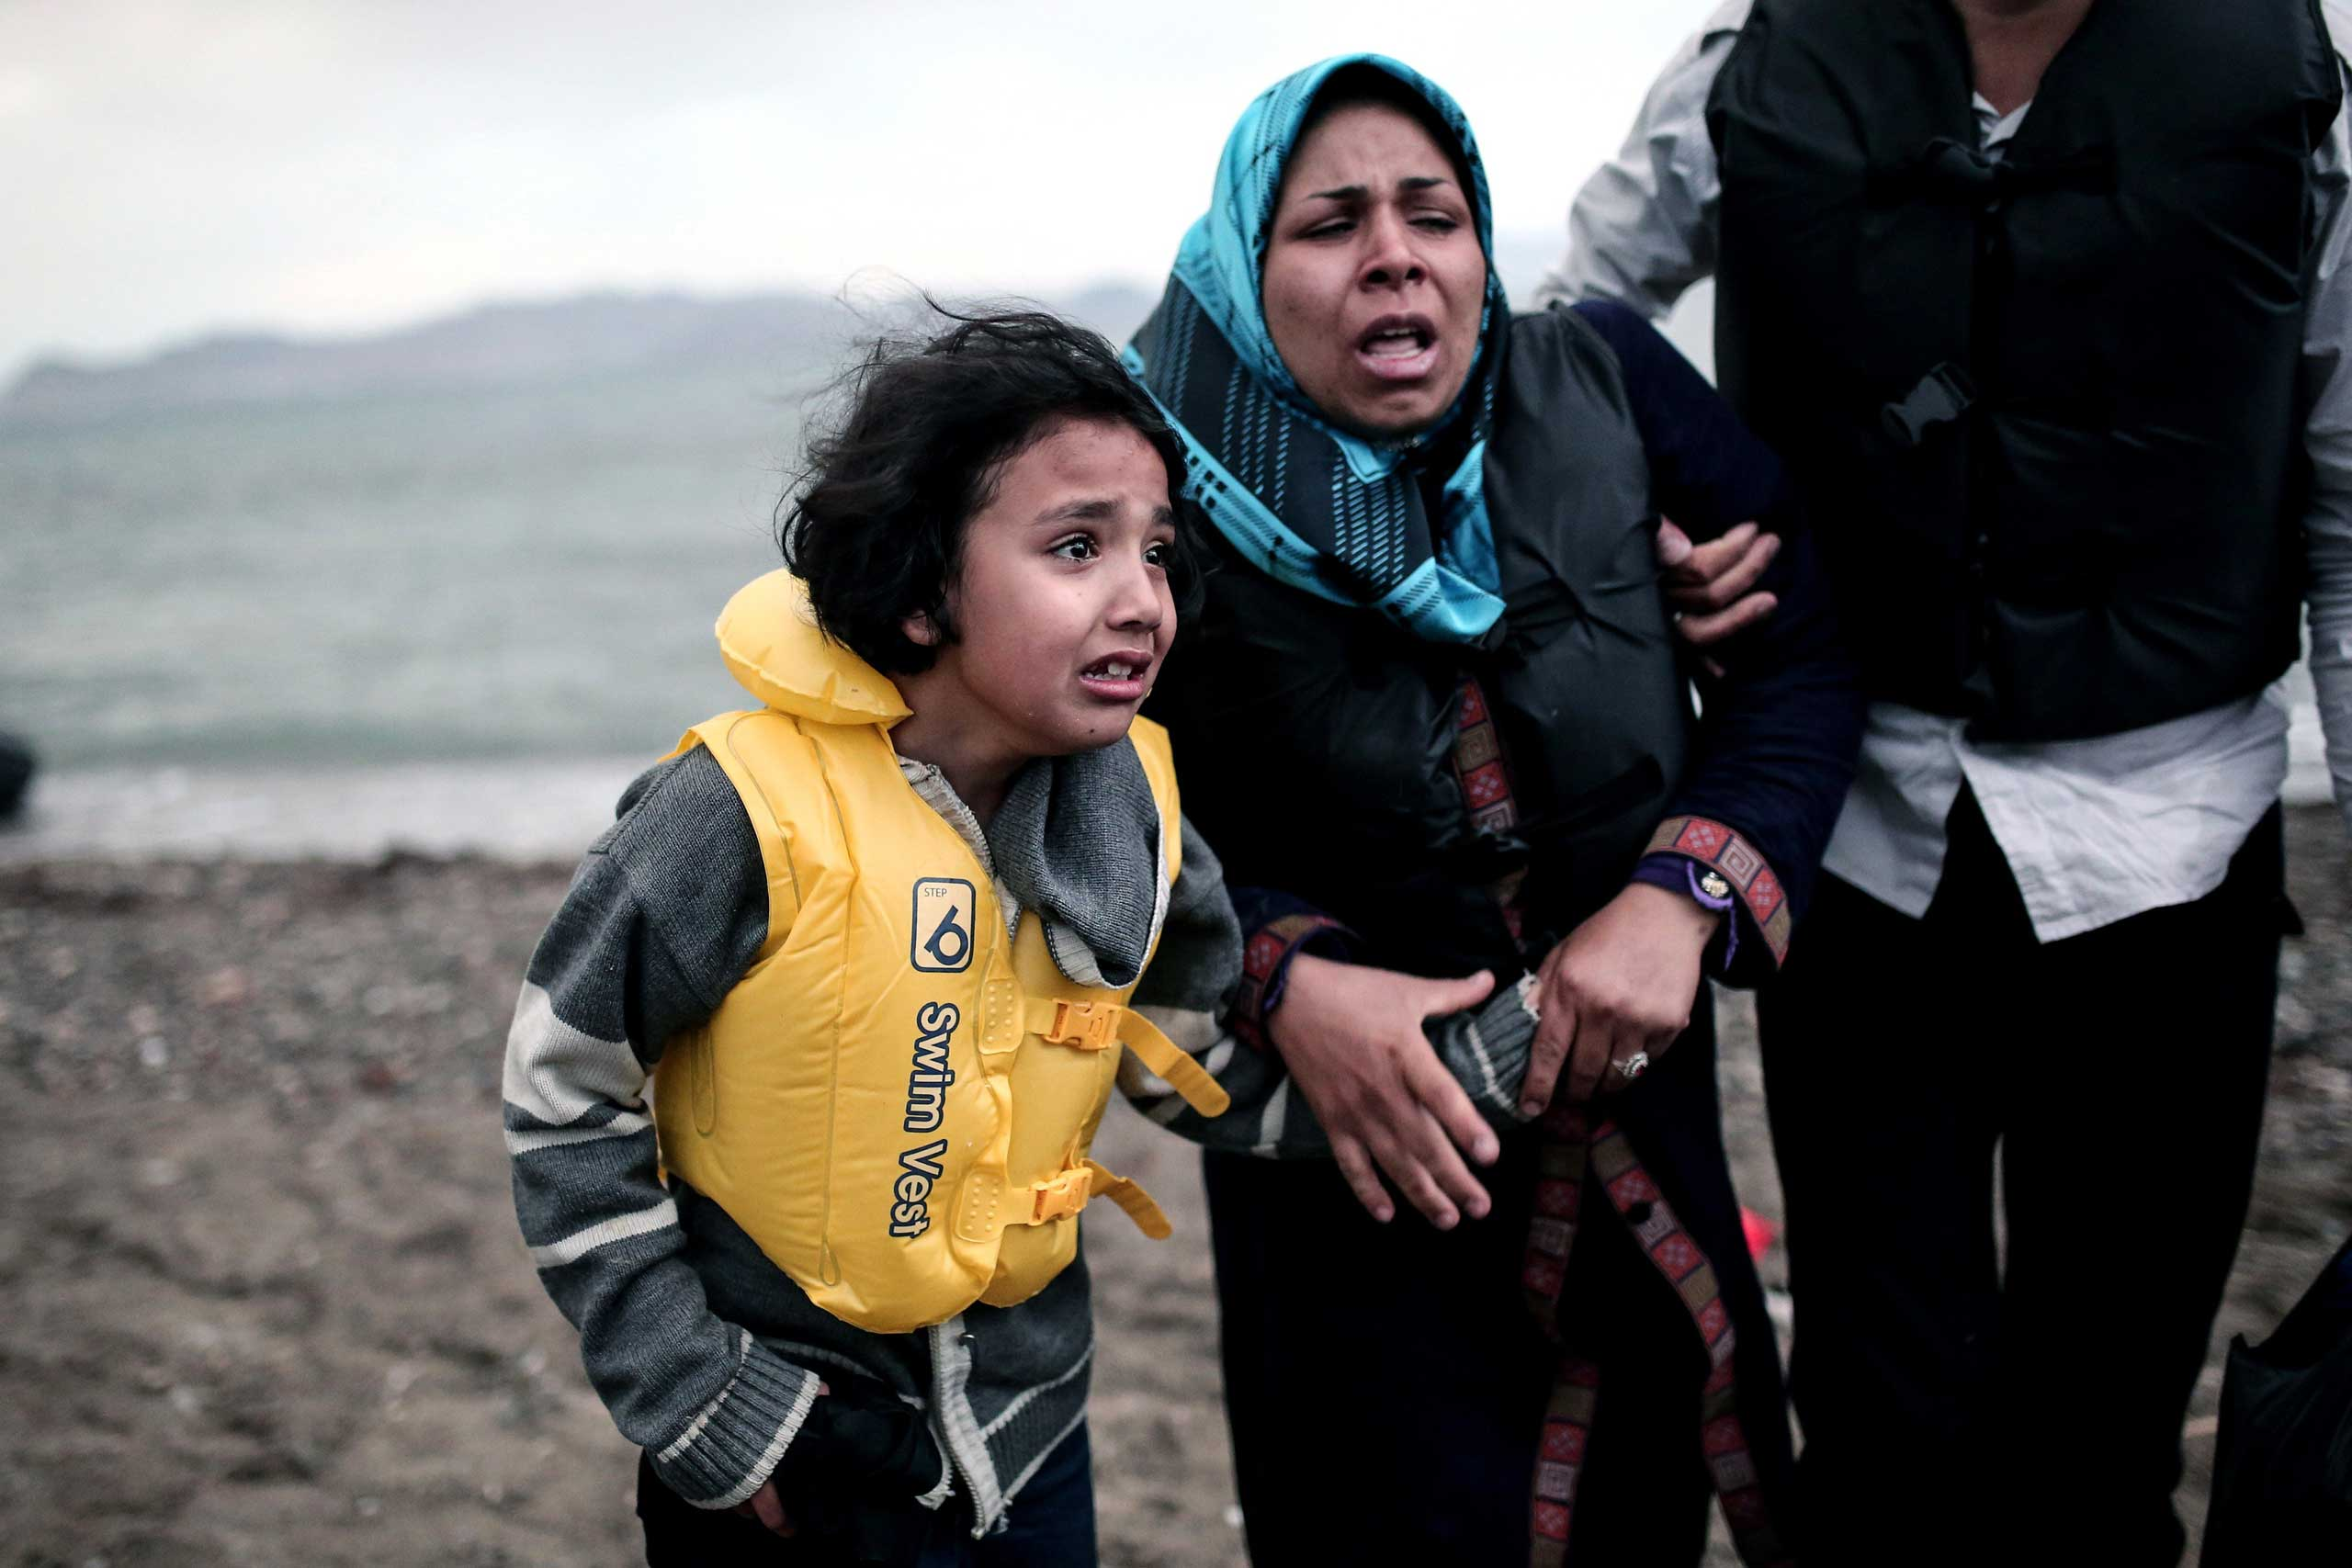 An Afghan migrant girl holds the hand of a woman as they arrive on the Greek island of Kos, after crossing a part of the Aegean Sea between Turkey and Greece, on May 27, 2015.